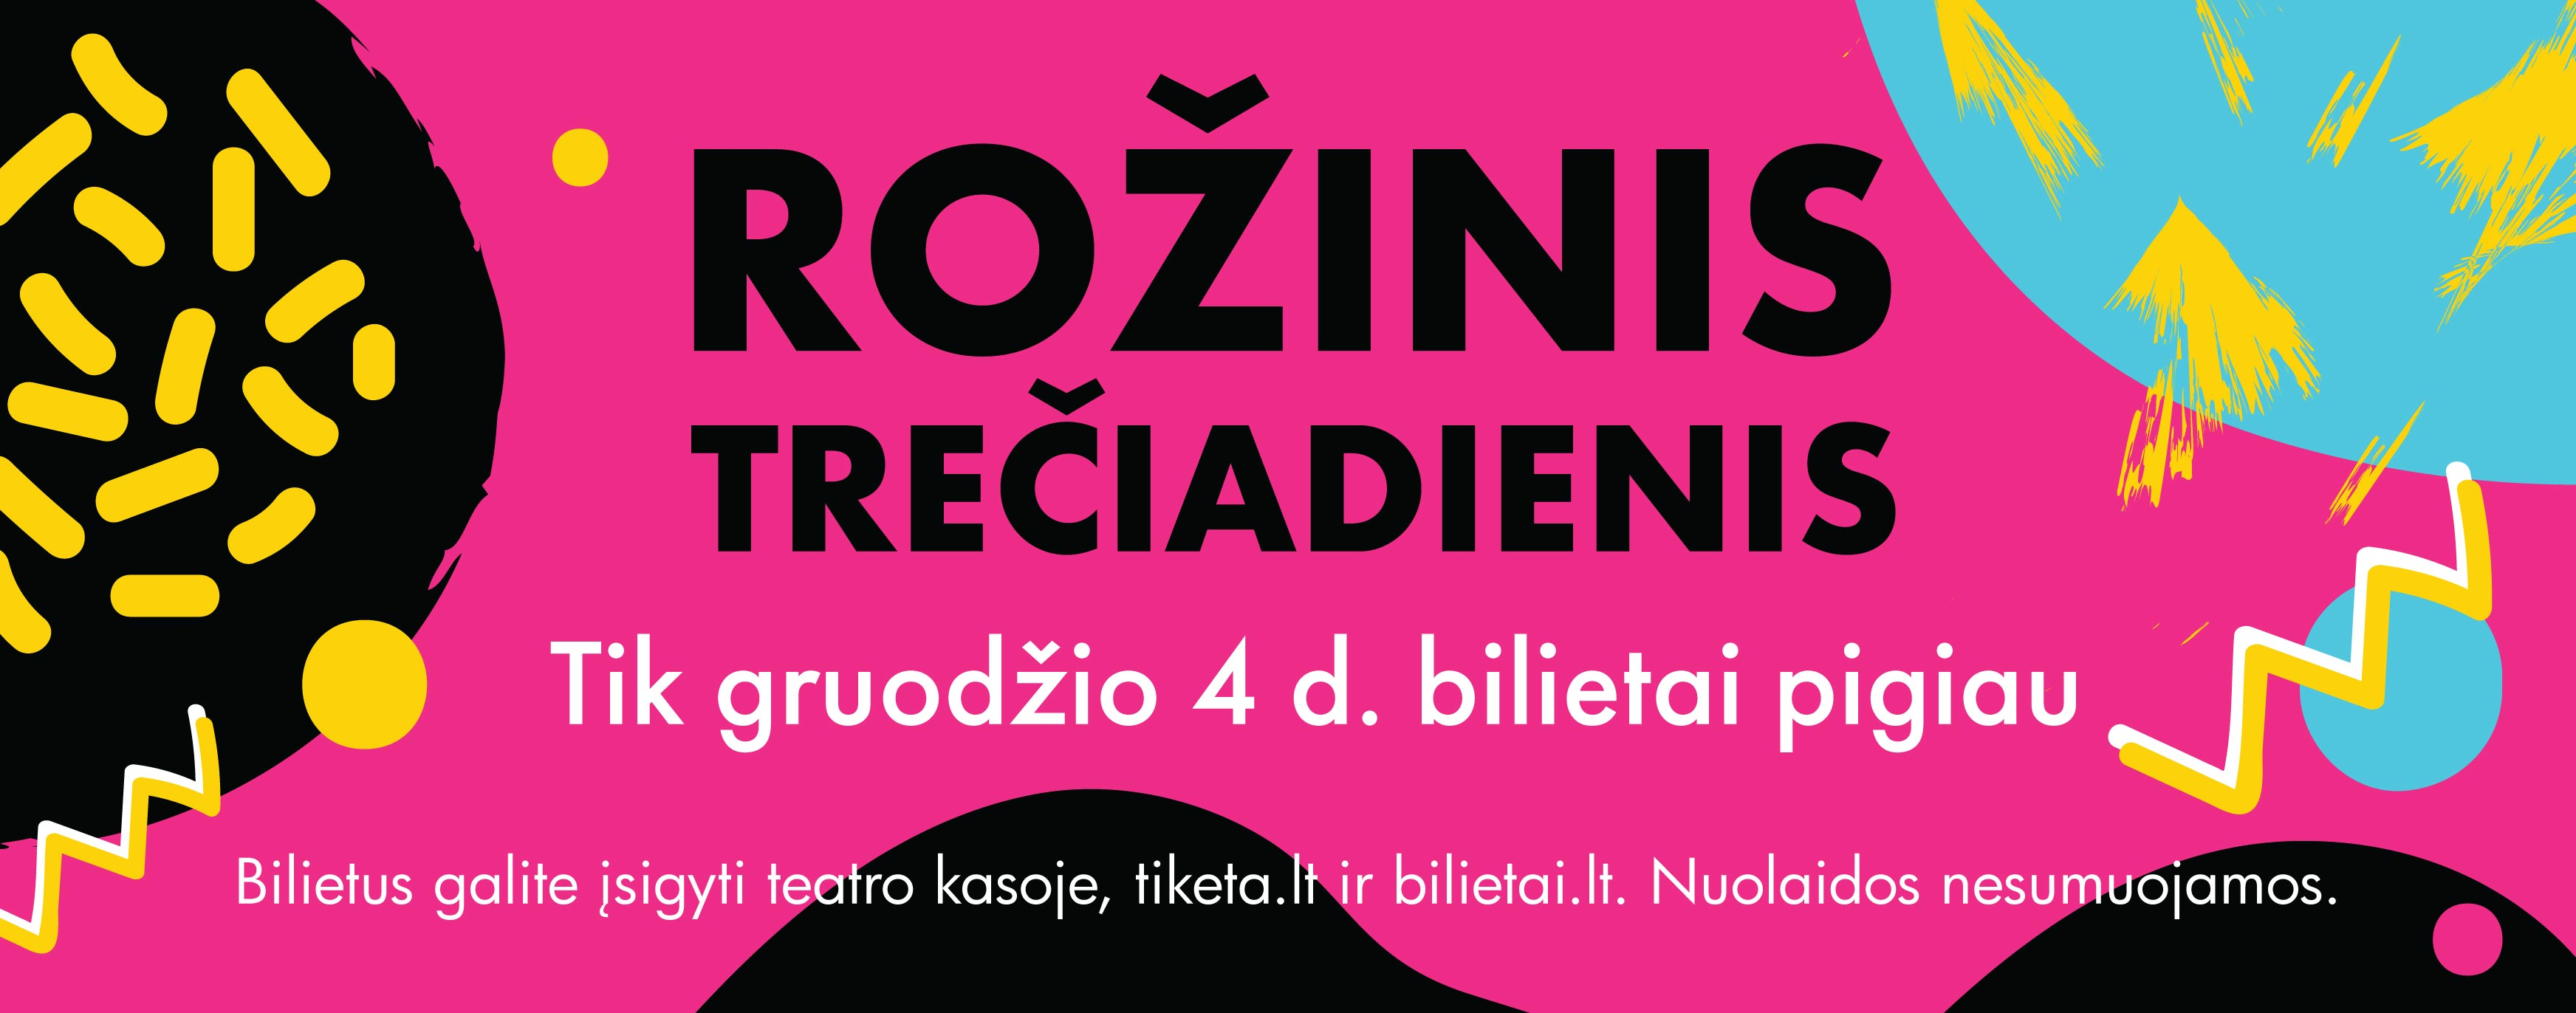 Rozinis_Fb_cover